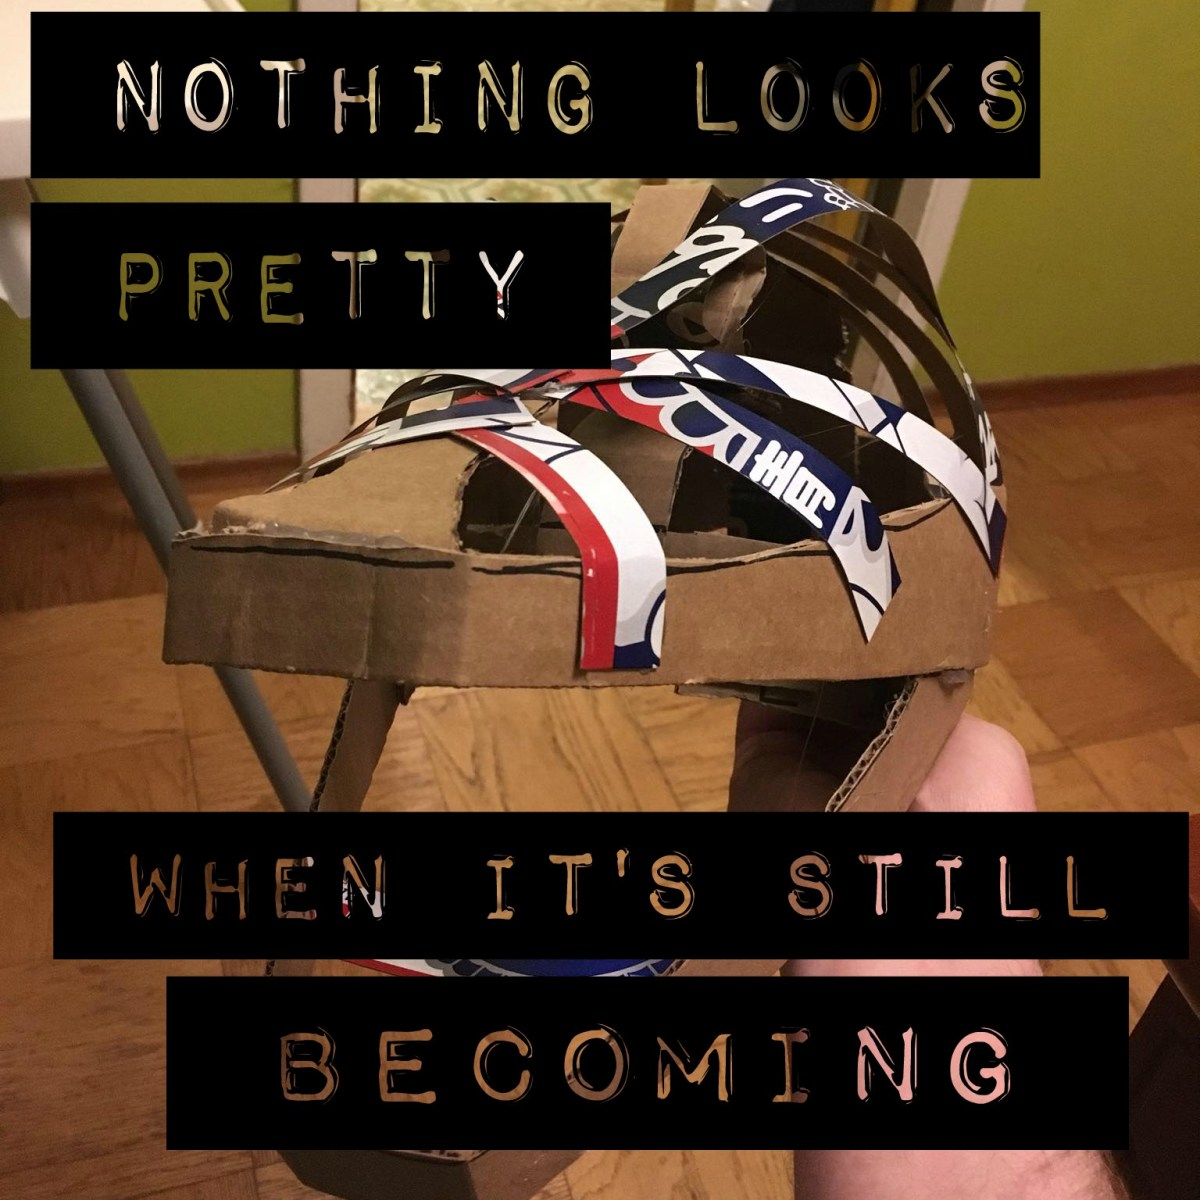 Nothing looks pretty when it's still becoming